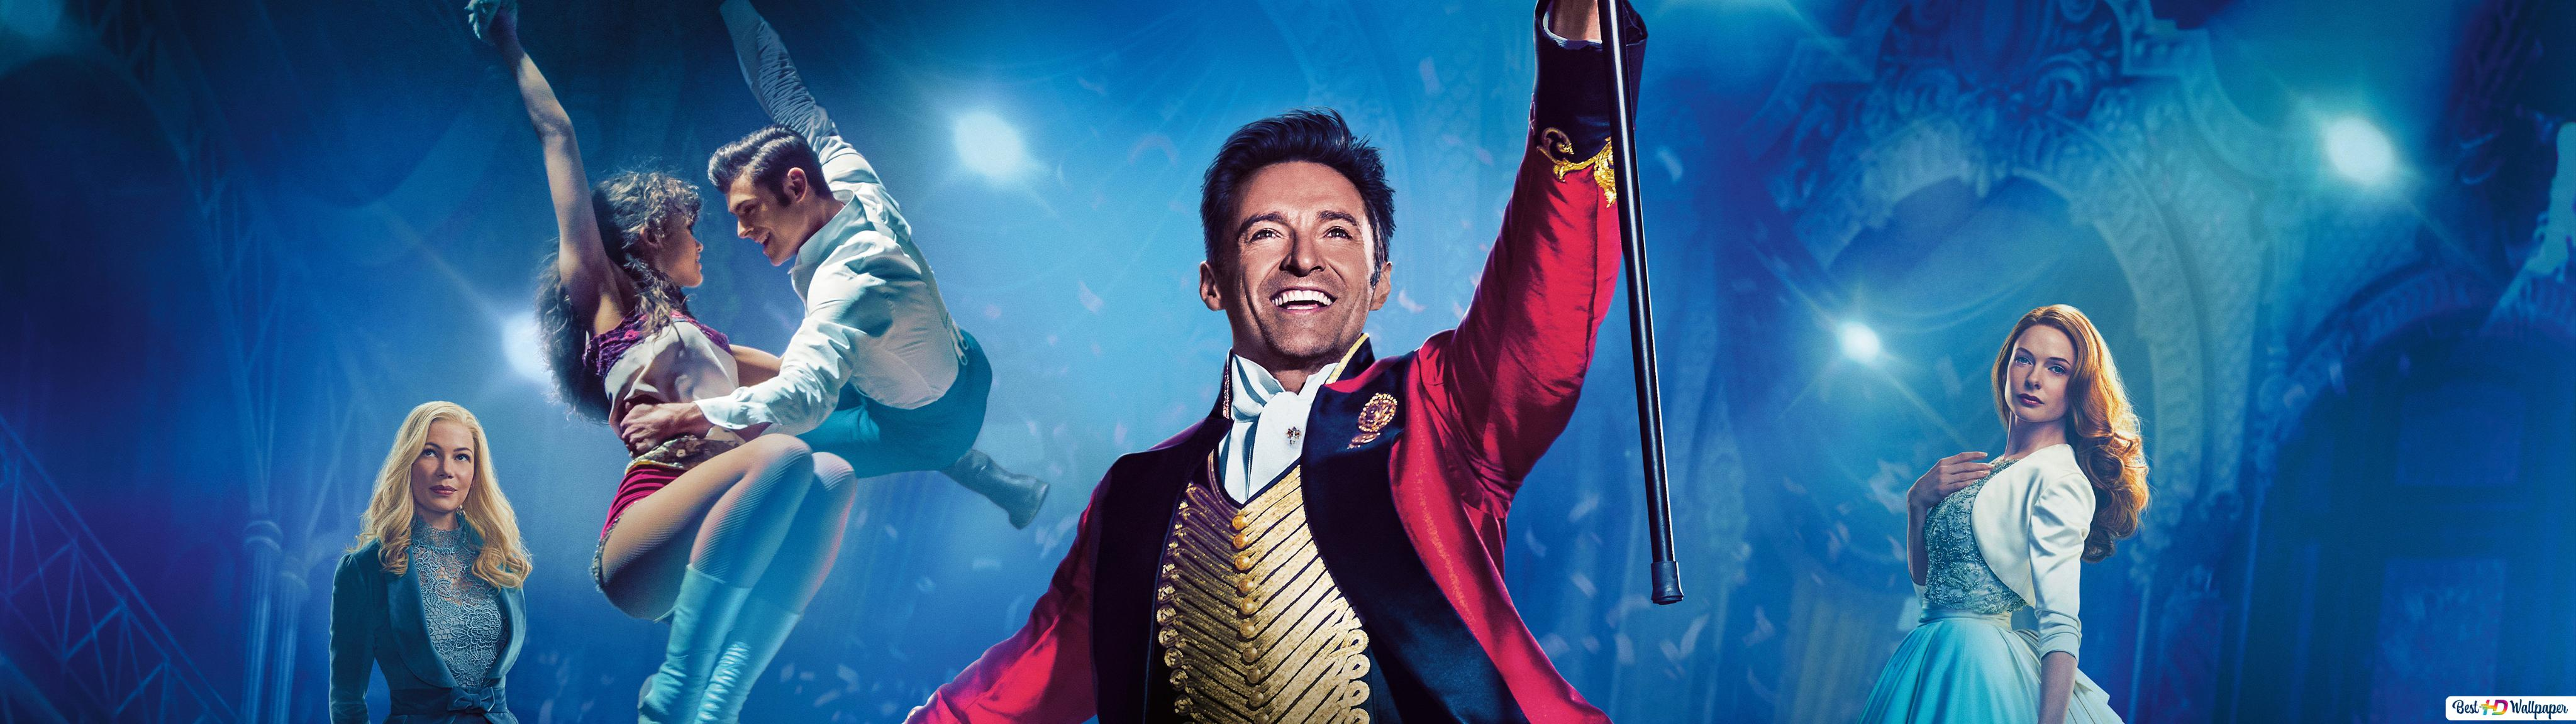 The Greatest Showman Hd Wallpaper Download